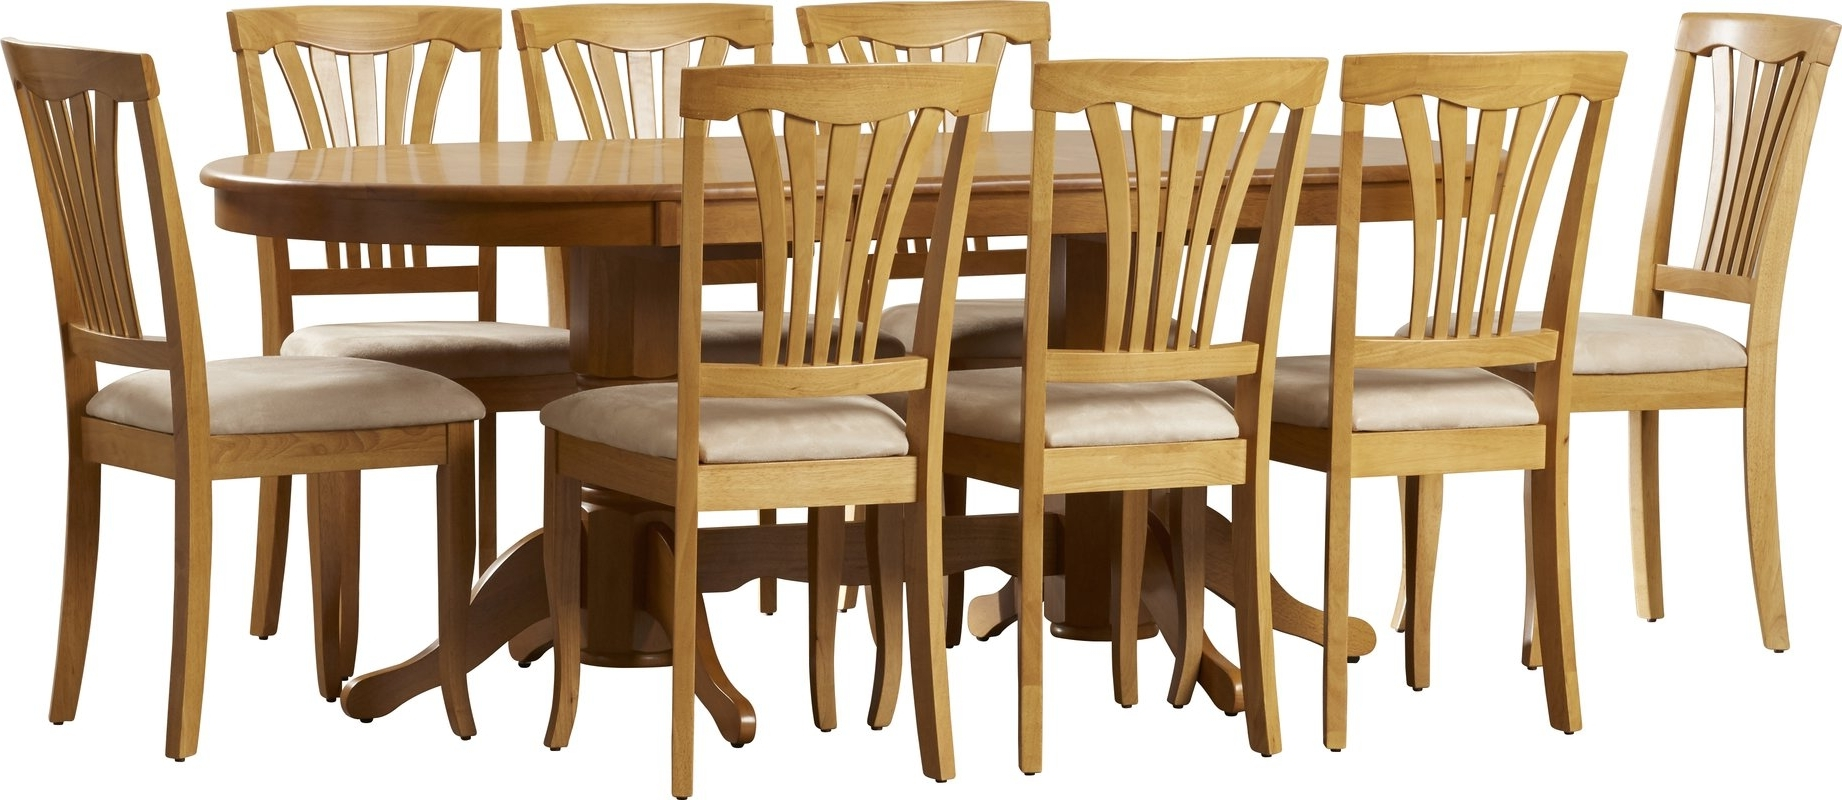 [%100+ [ 9 Piece Dining Room Sets ] | 100 9 Pc Dining Room Sets Lark Pertaining To Favorite Caira 9 Piece Extension Dining Sets With Diamond Back Chairs|Caira 9 Piece Extension Dining Sets With Diamond Back Chairs With Regard To Newest 100+ [ 9 Piece Dining Room Sets ] | 100 9 Pc Dining Room Sets Lark|Well Known Caira 9 Piece Extension Dining Sets With Diamond Back Chairs Inside 100+ [ 9 Piece Dining Room Sets ] | 100 9 Pc Dining Room Sets Lark|Well Known 100+ [ 9 Piece Dining Room Sets ] | 100 9 Pc Dining Room Sets Lark Regarding Caira 9 Piece Extension Dining Sets With Diamond Back Chairs%] (View 8 of 25)